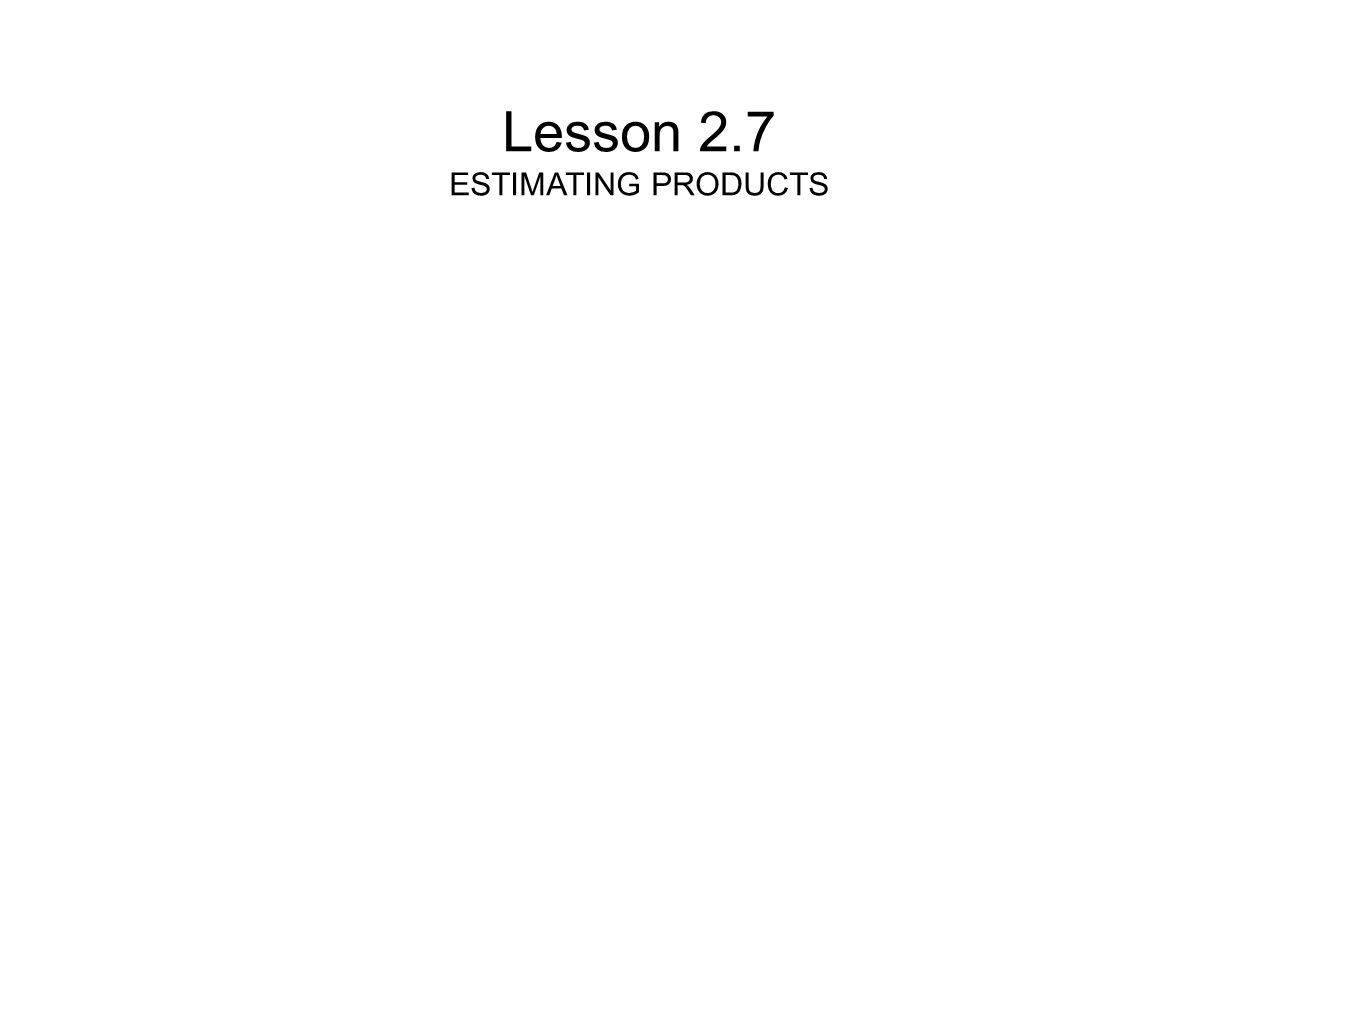 Lesson 2.7 ESTIMATING PRODUCTS